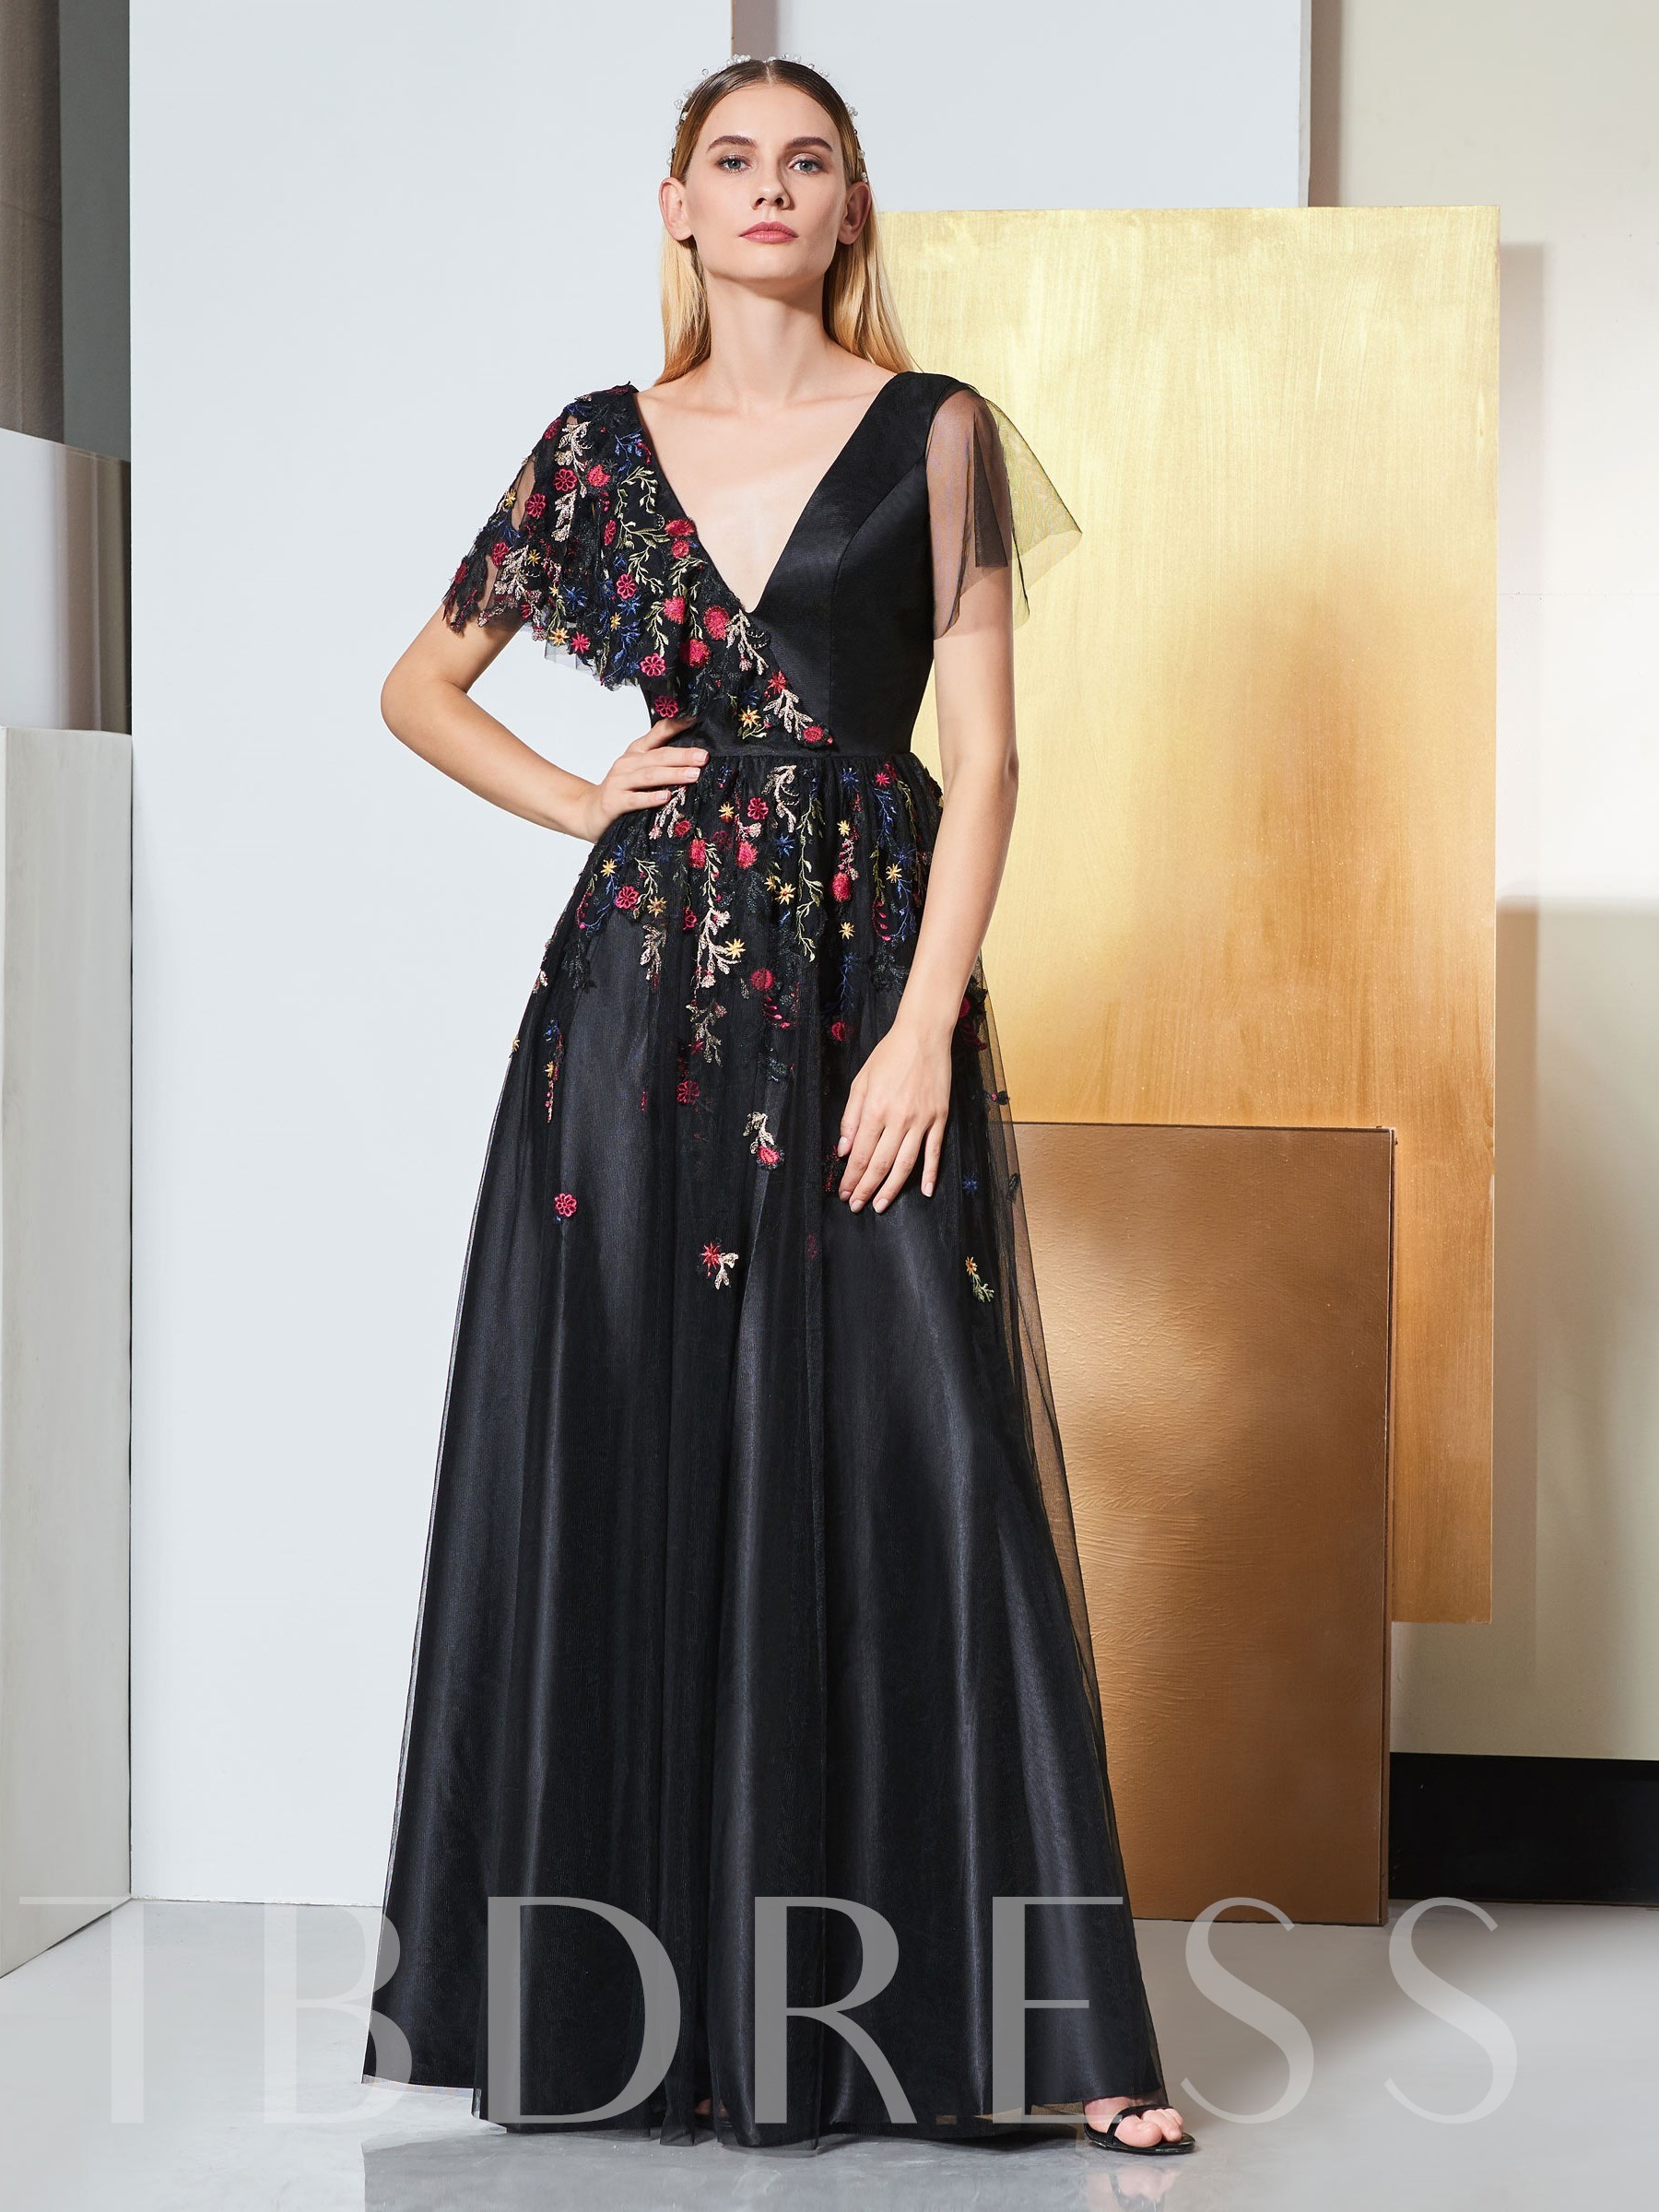 Buy A-Line Appliques V-Neck Short Sleeves Prom Dress, Spring,Summer,Fall,Winter, 13332664 for $157.49 in TBDress store